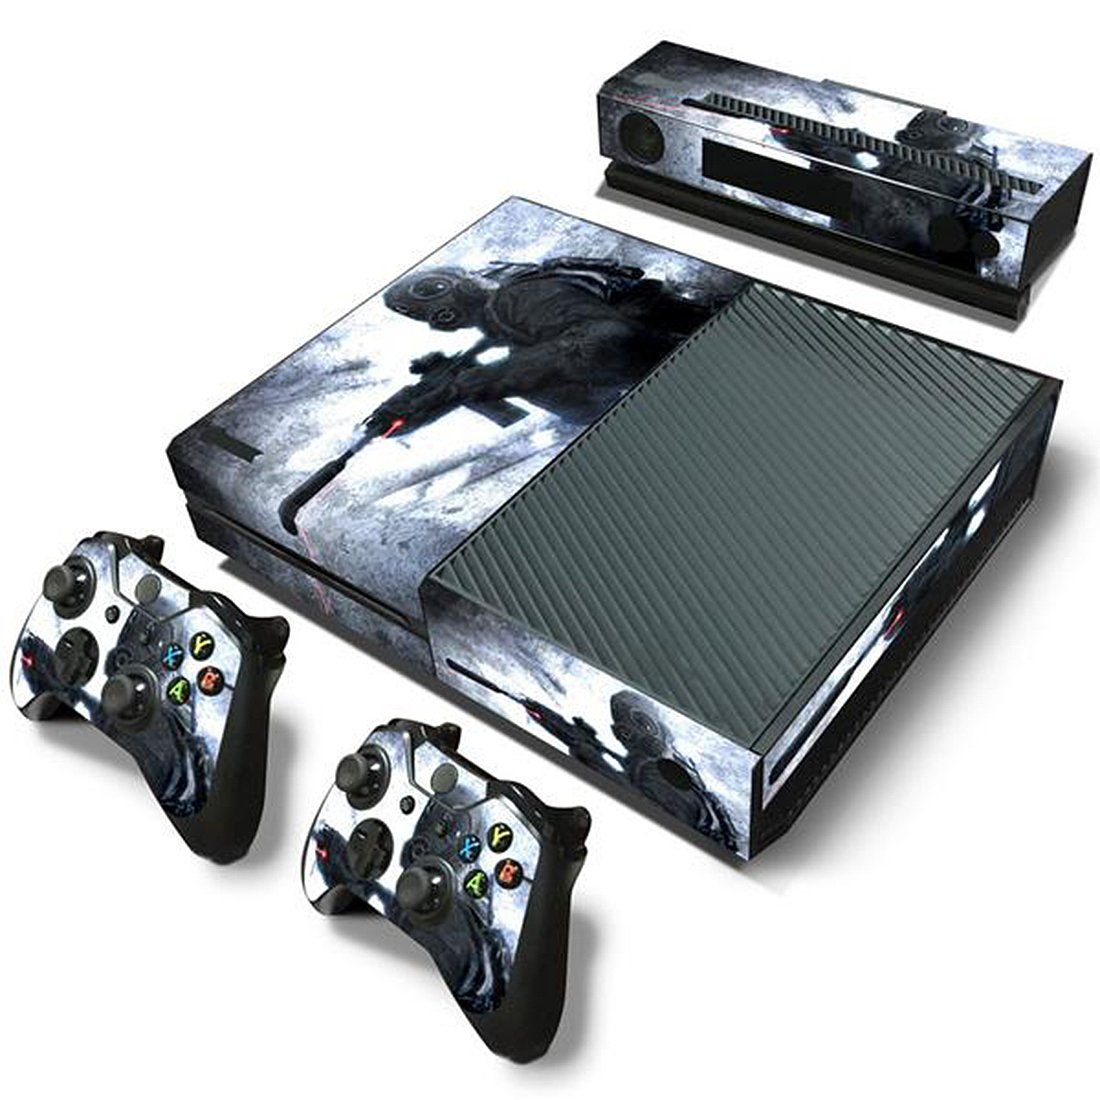 Mod Freakz Console and Controller Vinyl Skin Set - Call of Duty Metro for Xbox One